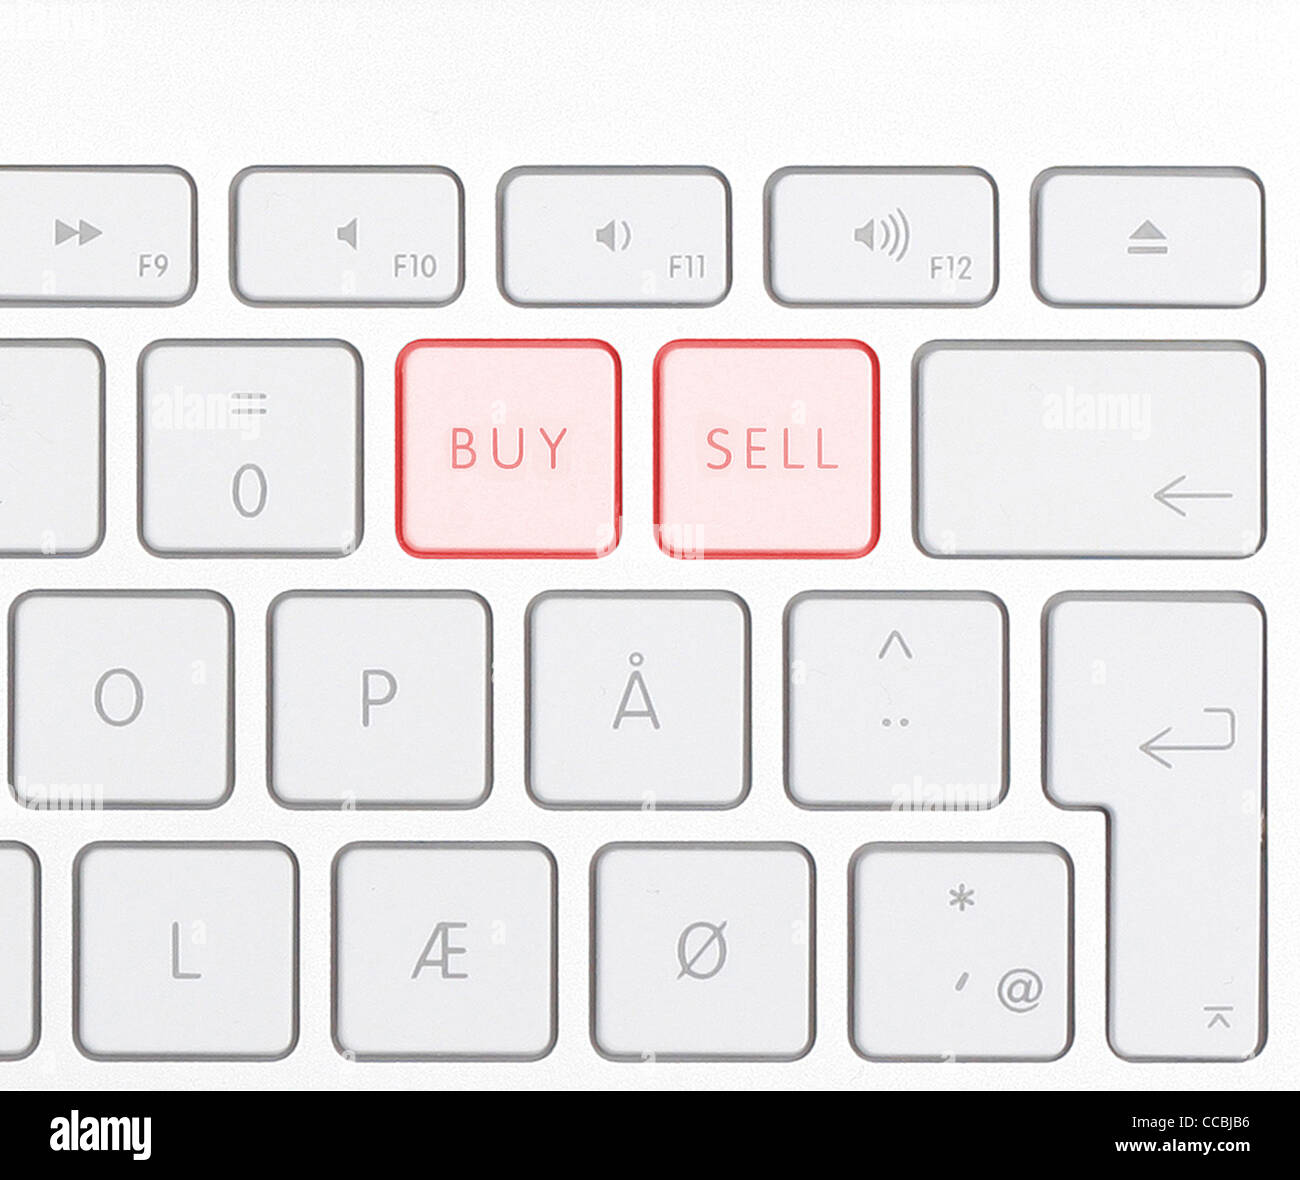 Keyboard showing buy sell buttons - Stock Image